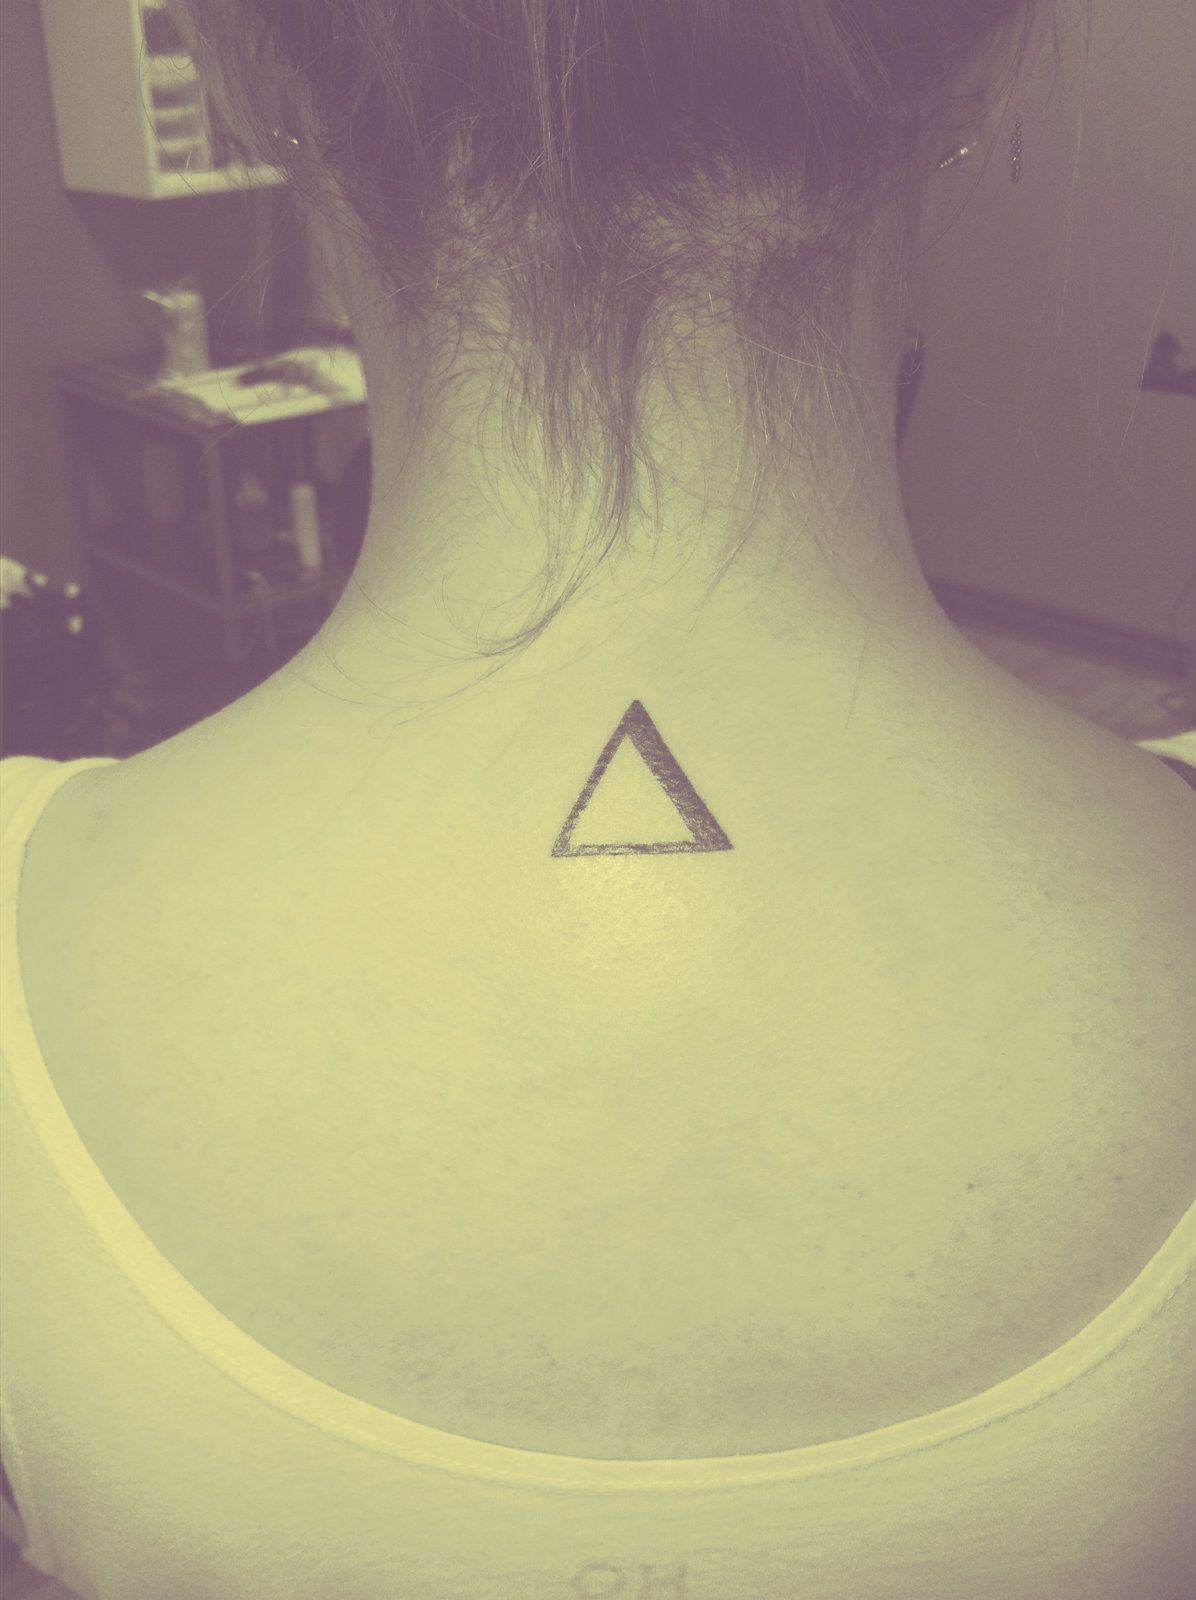 Delta Letus get a tattoo Pinterest Tattoo Piercings and Tatoo